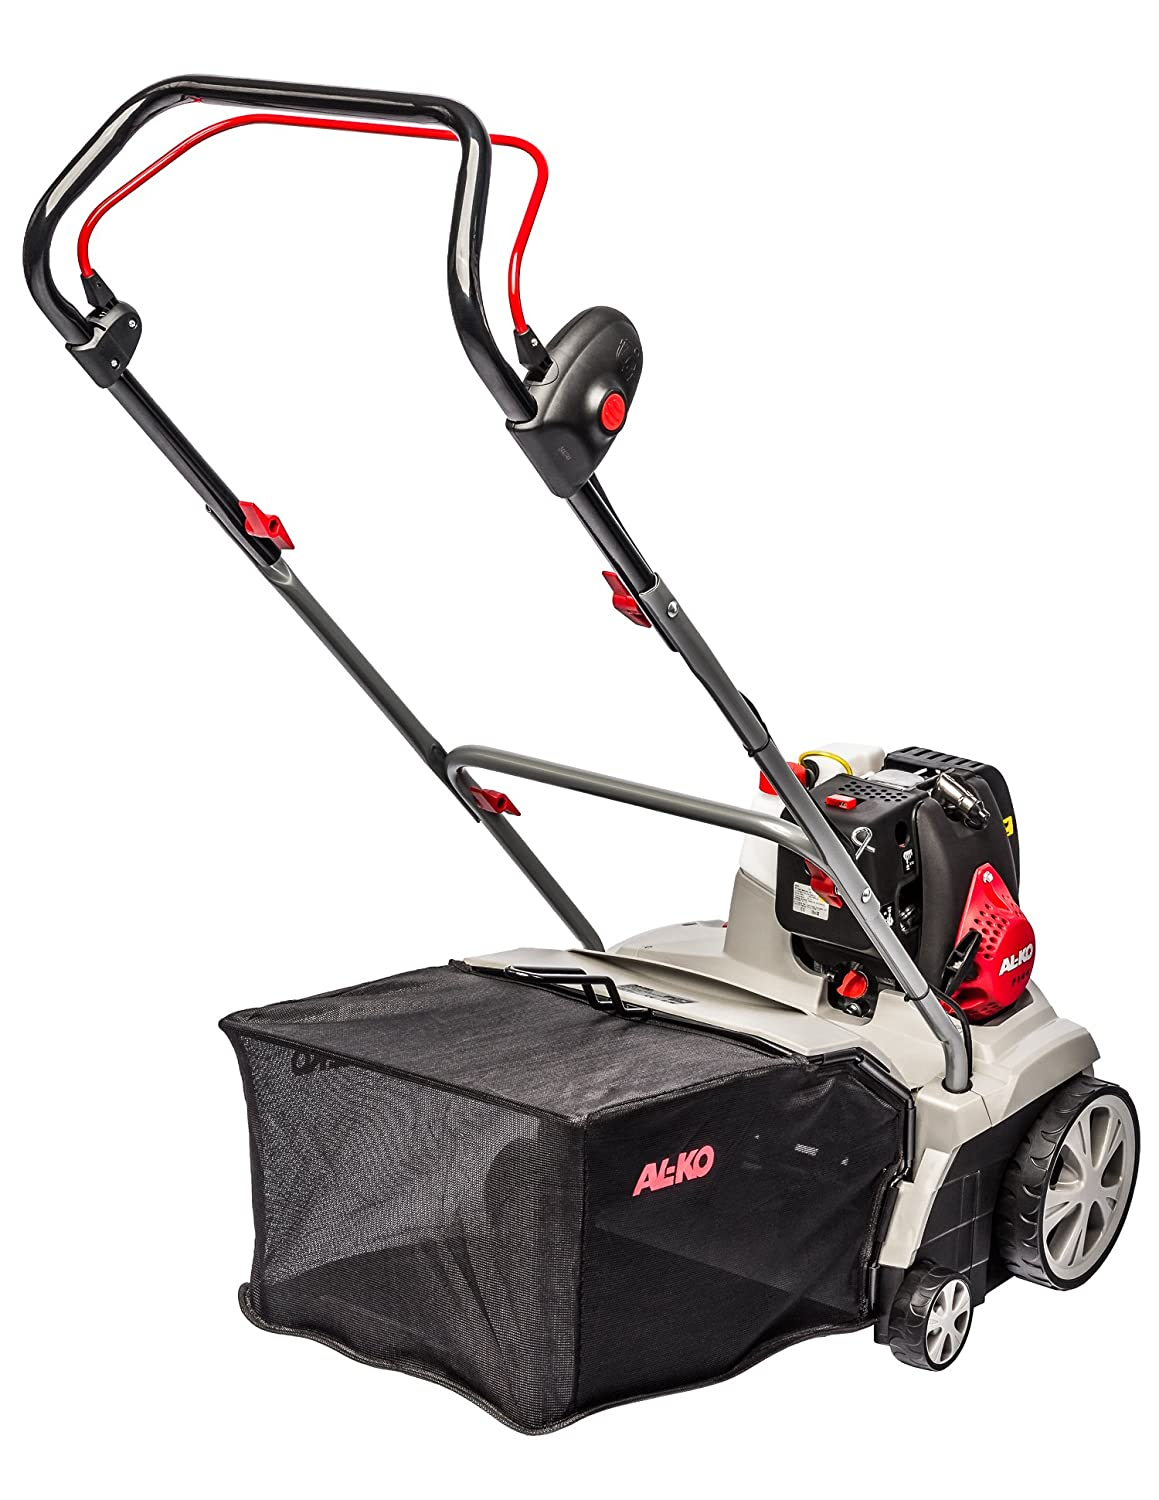 AL-KO Combi Care 38 P Comfort - Cortacésped (Manual lawnmower, Rotary blades, 37 cm, 1300W, Gasolina, 20 kg)